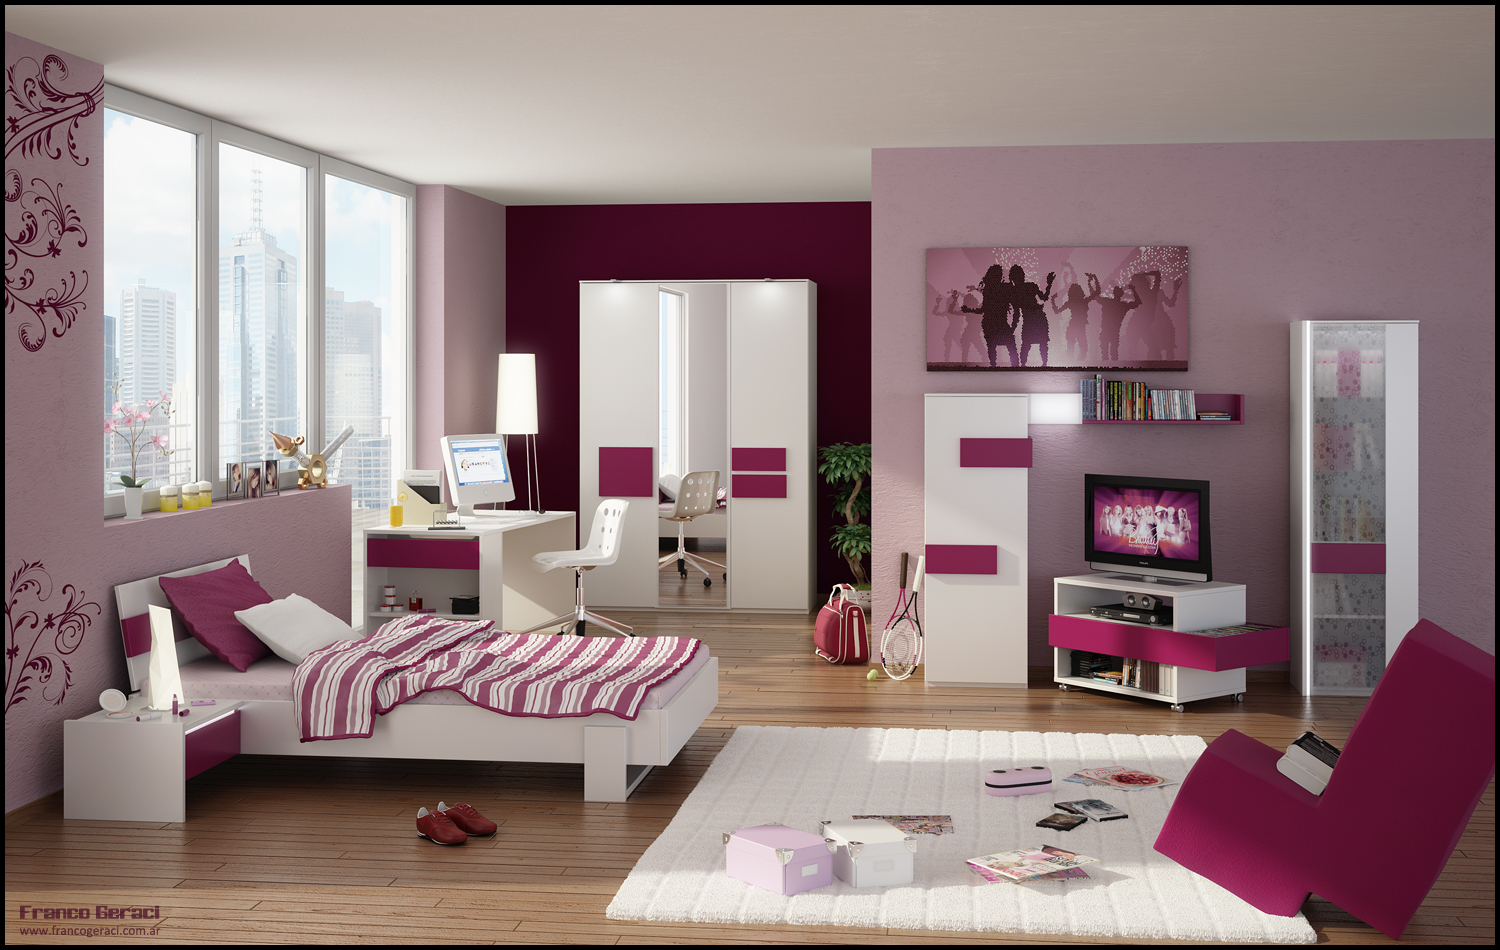 Teenage room designs - Designer bedrooms for women ...